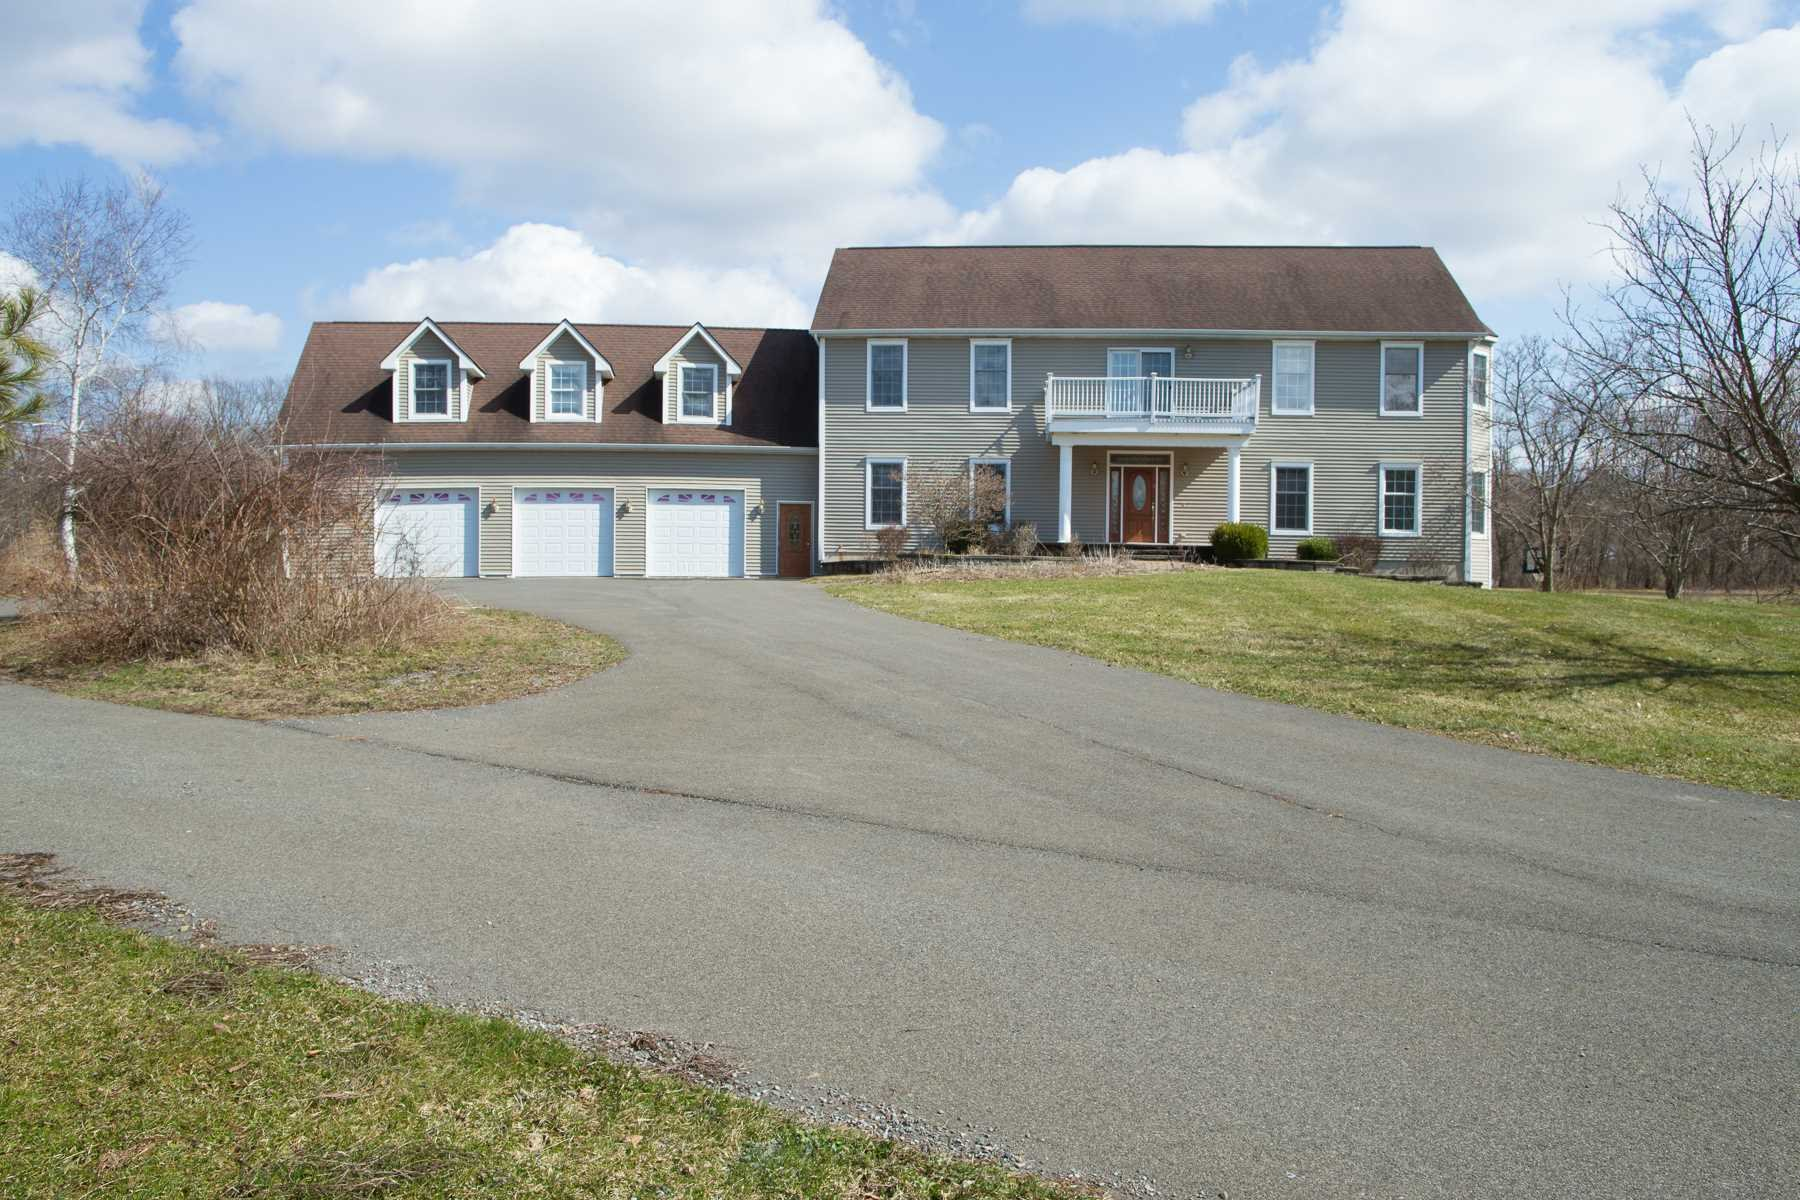 Single Family Home for Sale at 4 TOMS WAY 4 TOMS WAY Red Hook, New York 12571 United States